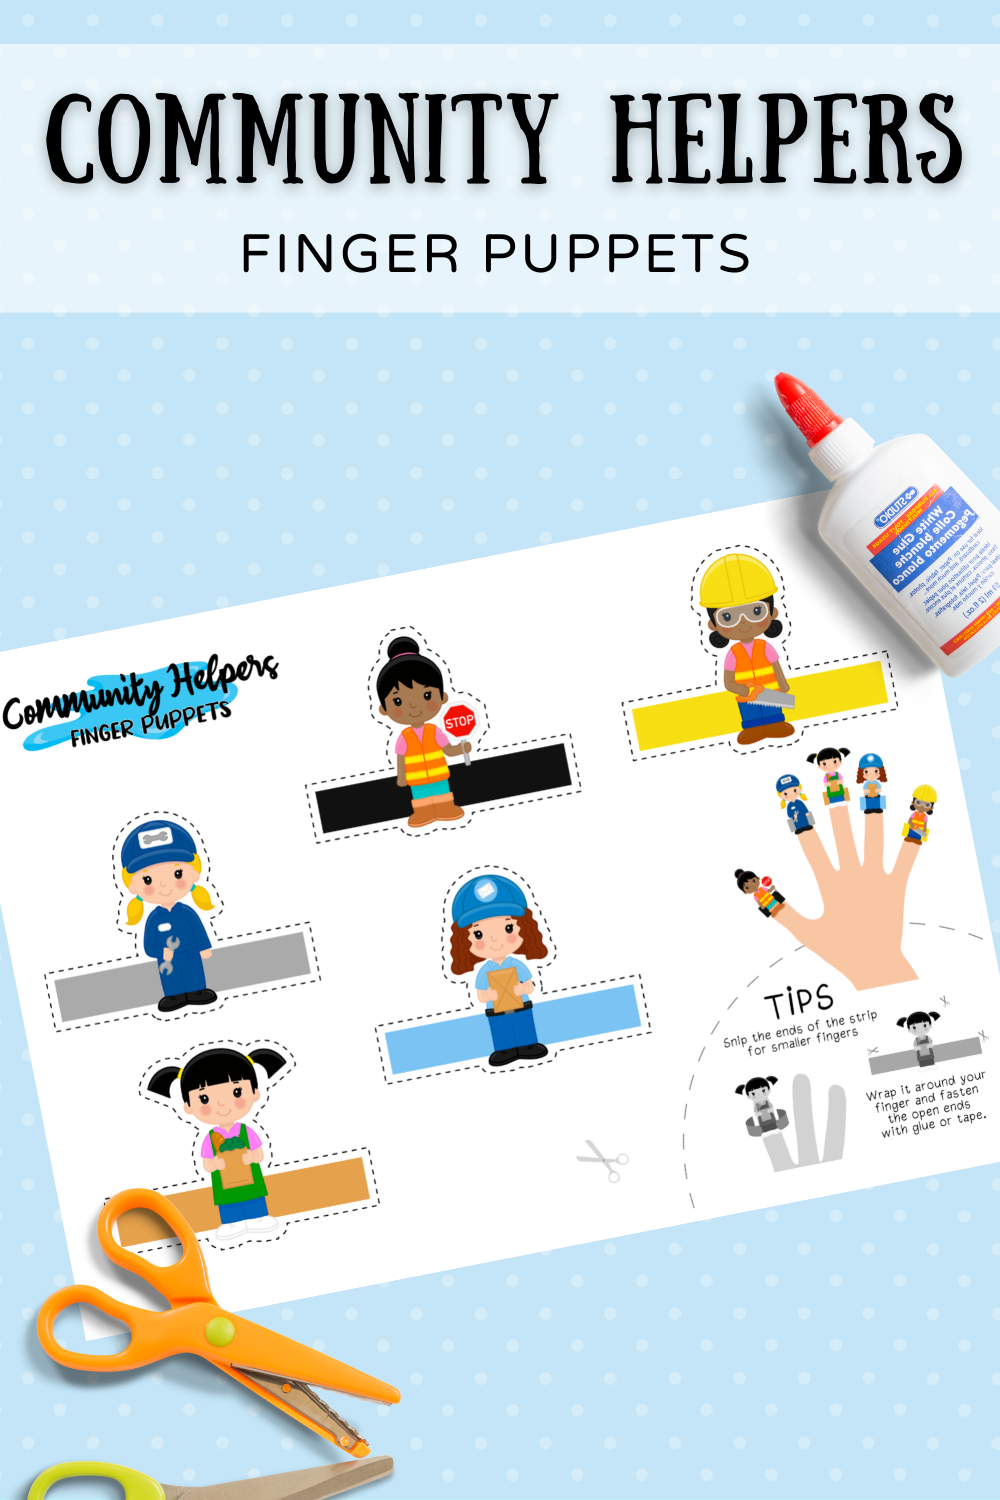 Community Helpers Girls Finger Puppets PIN 5 png